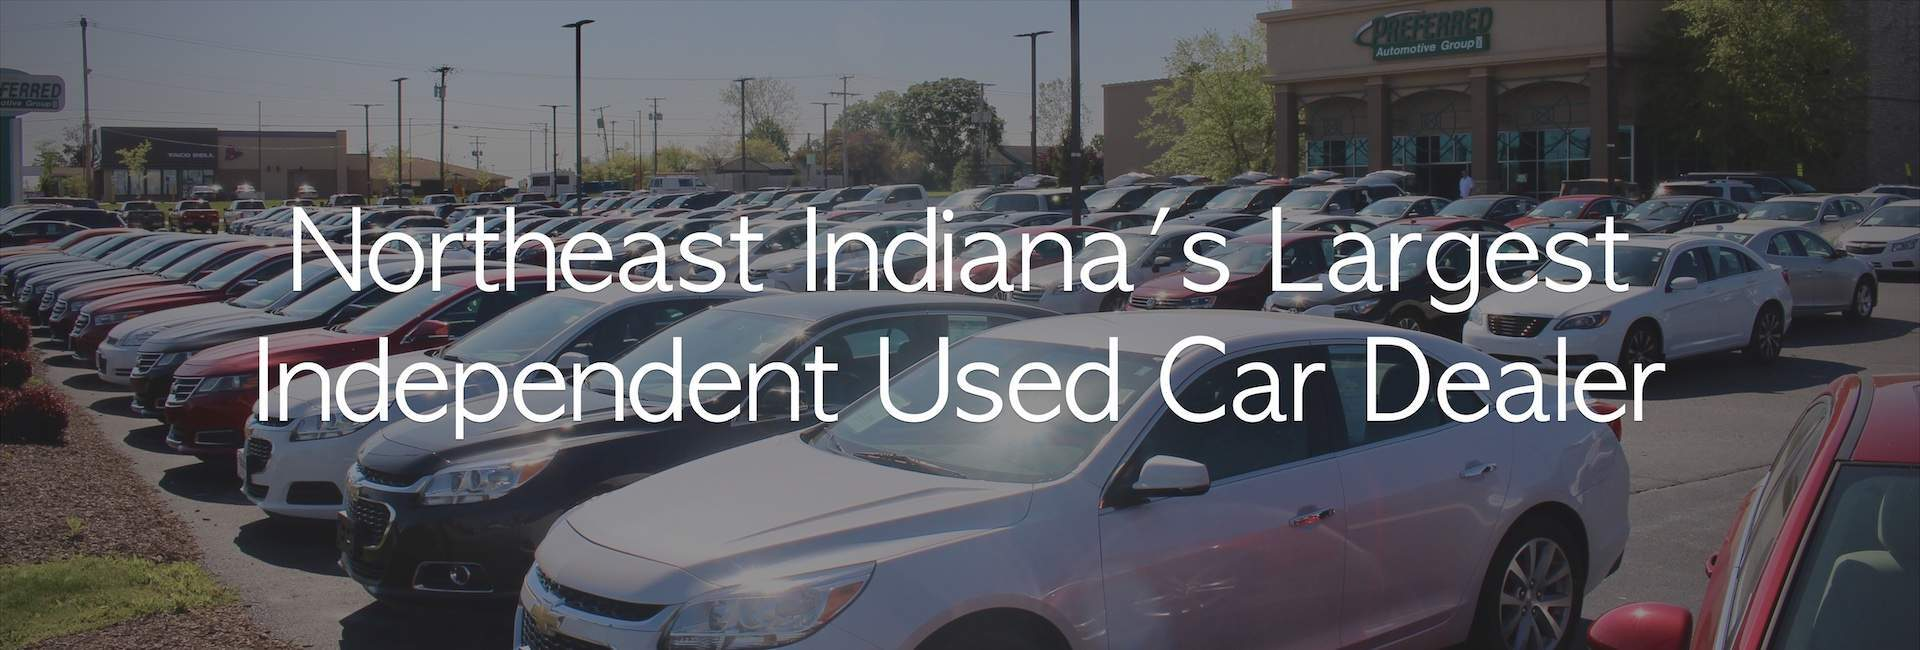 Used Car Dealerships In Fort Wayne Auburn And Kendallville